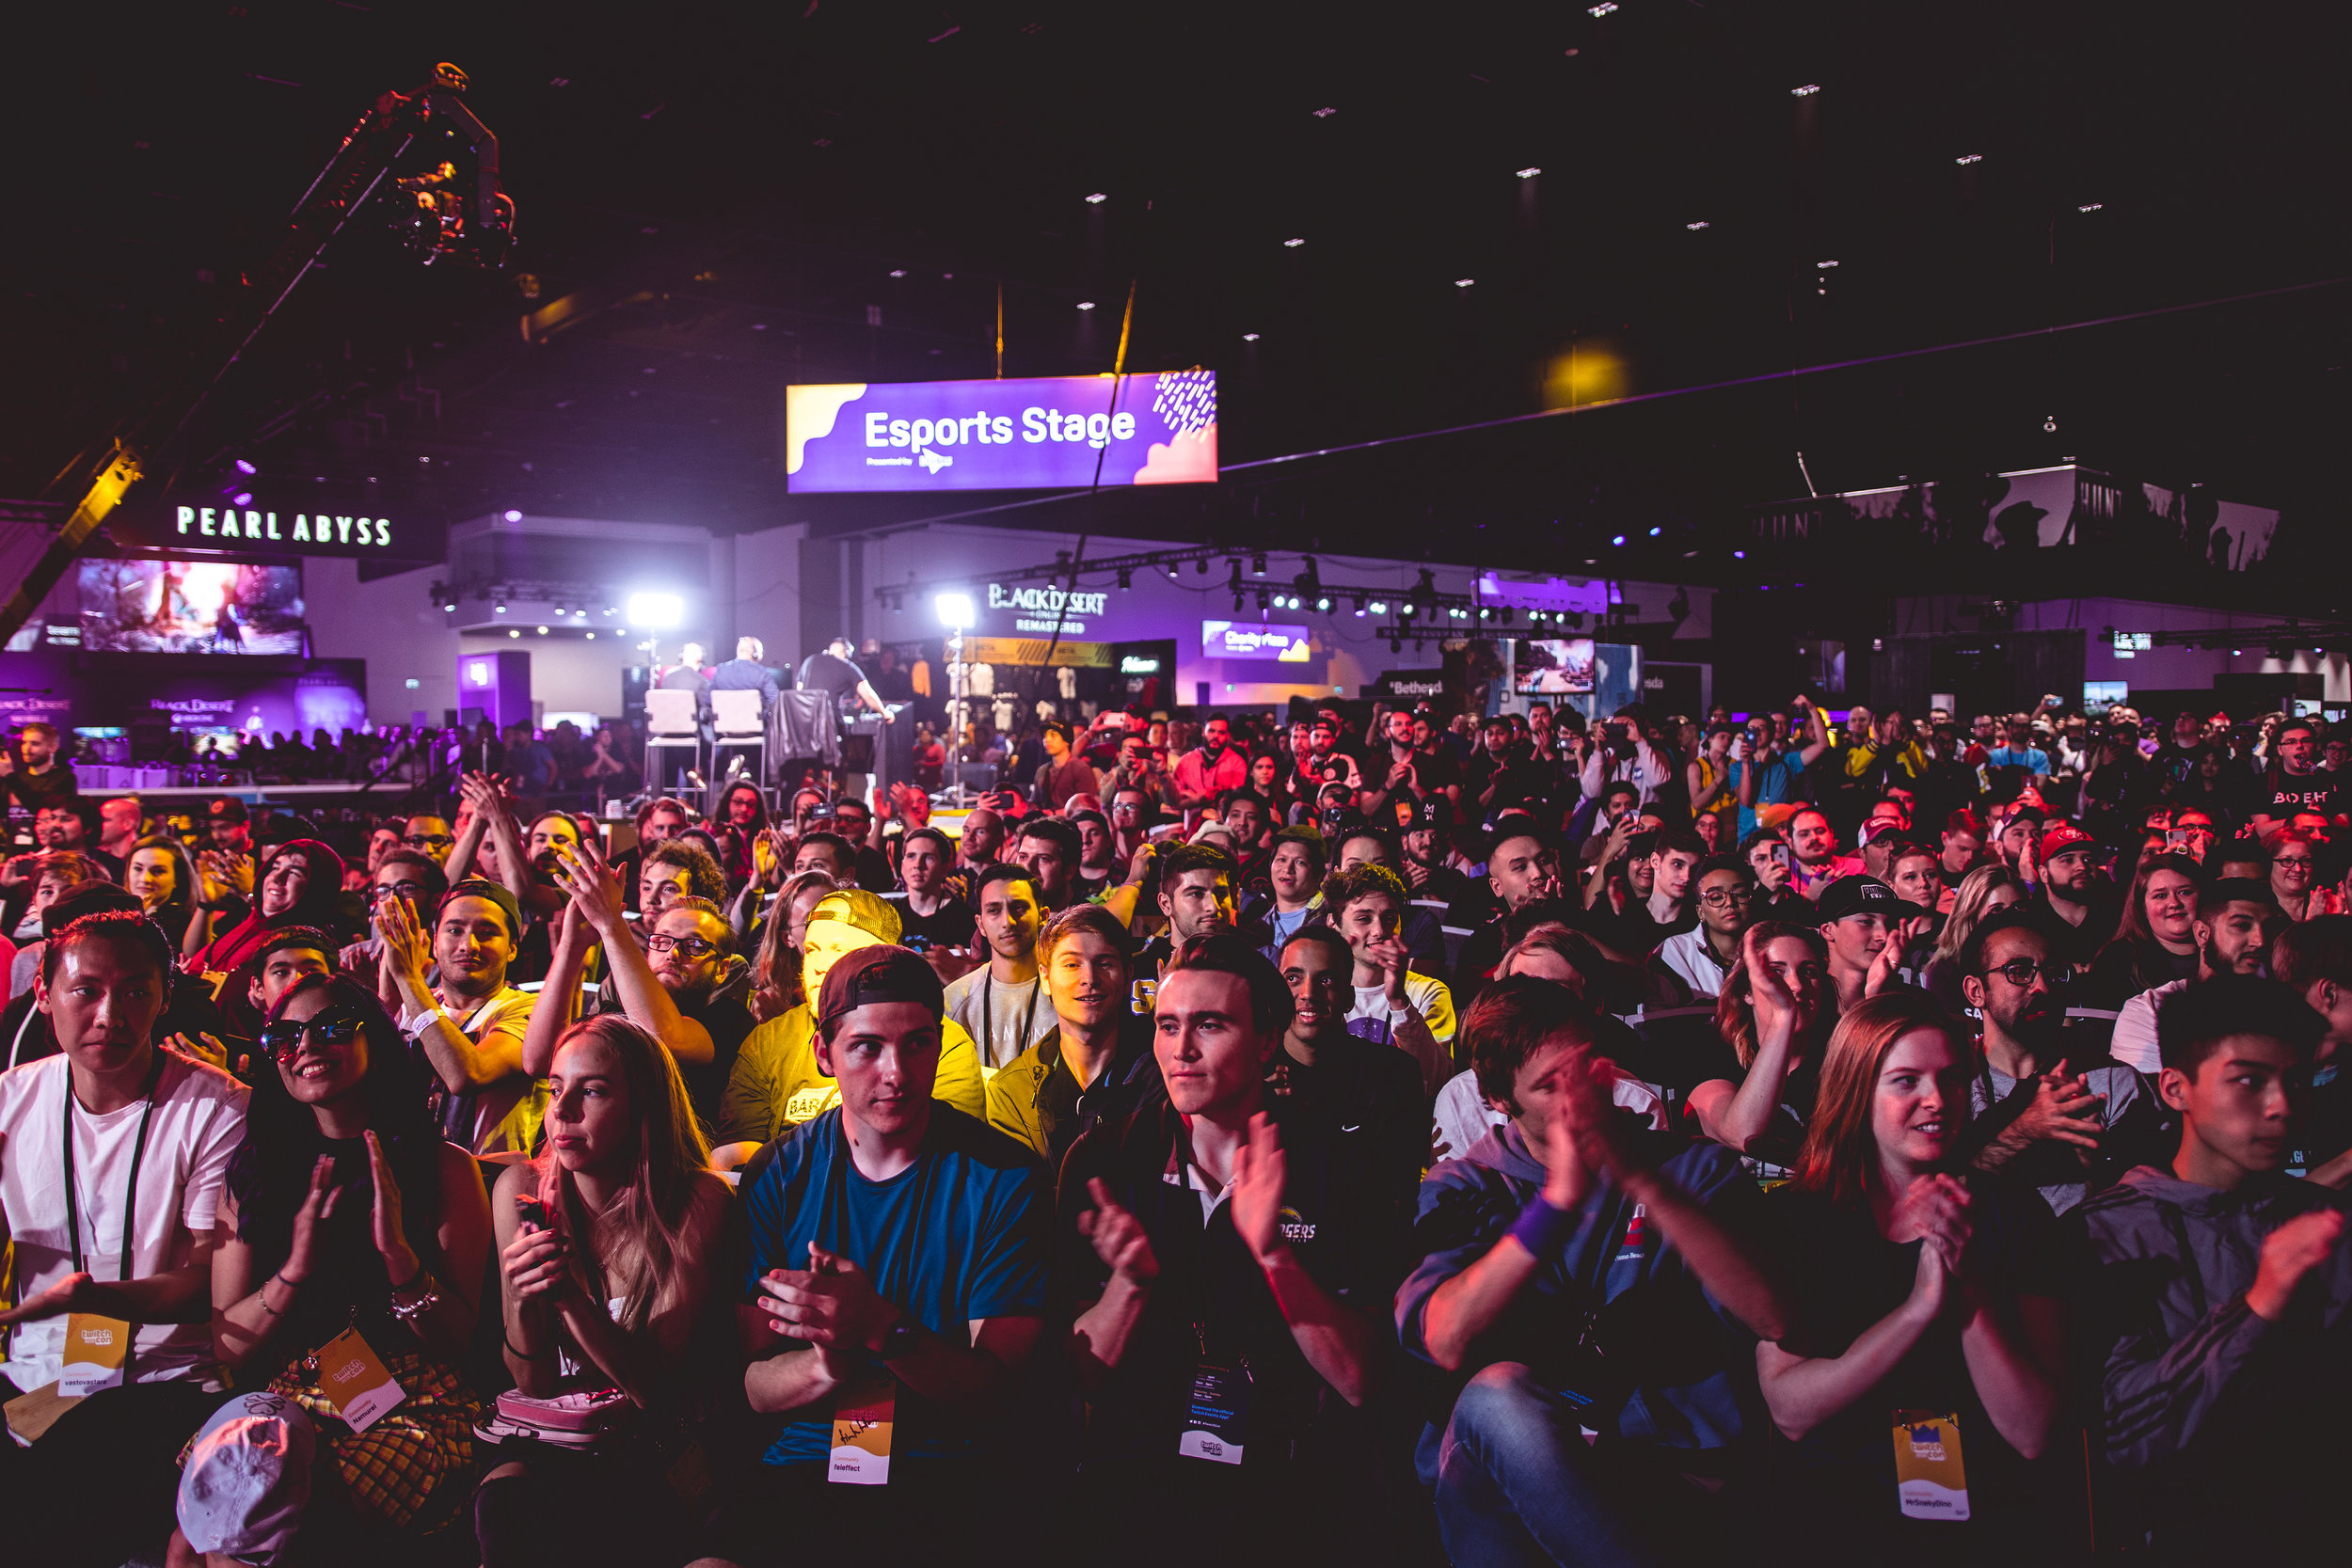 Energized fans enjoying competition at Doritos Bowl 2018 Call of Duty: Blackout Battle Royale tournament, TwitchCon at San Jose Convention Center on October 27, 2018 in San Jose, California.  Photo by: Eric Ananmalay / ESPAT Media